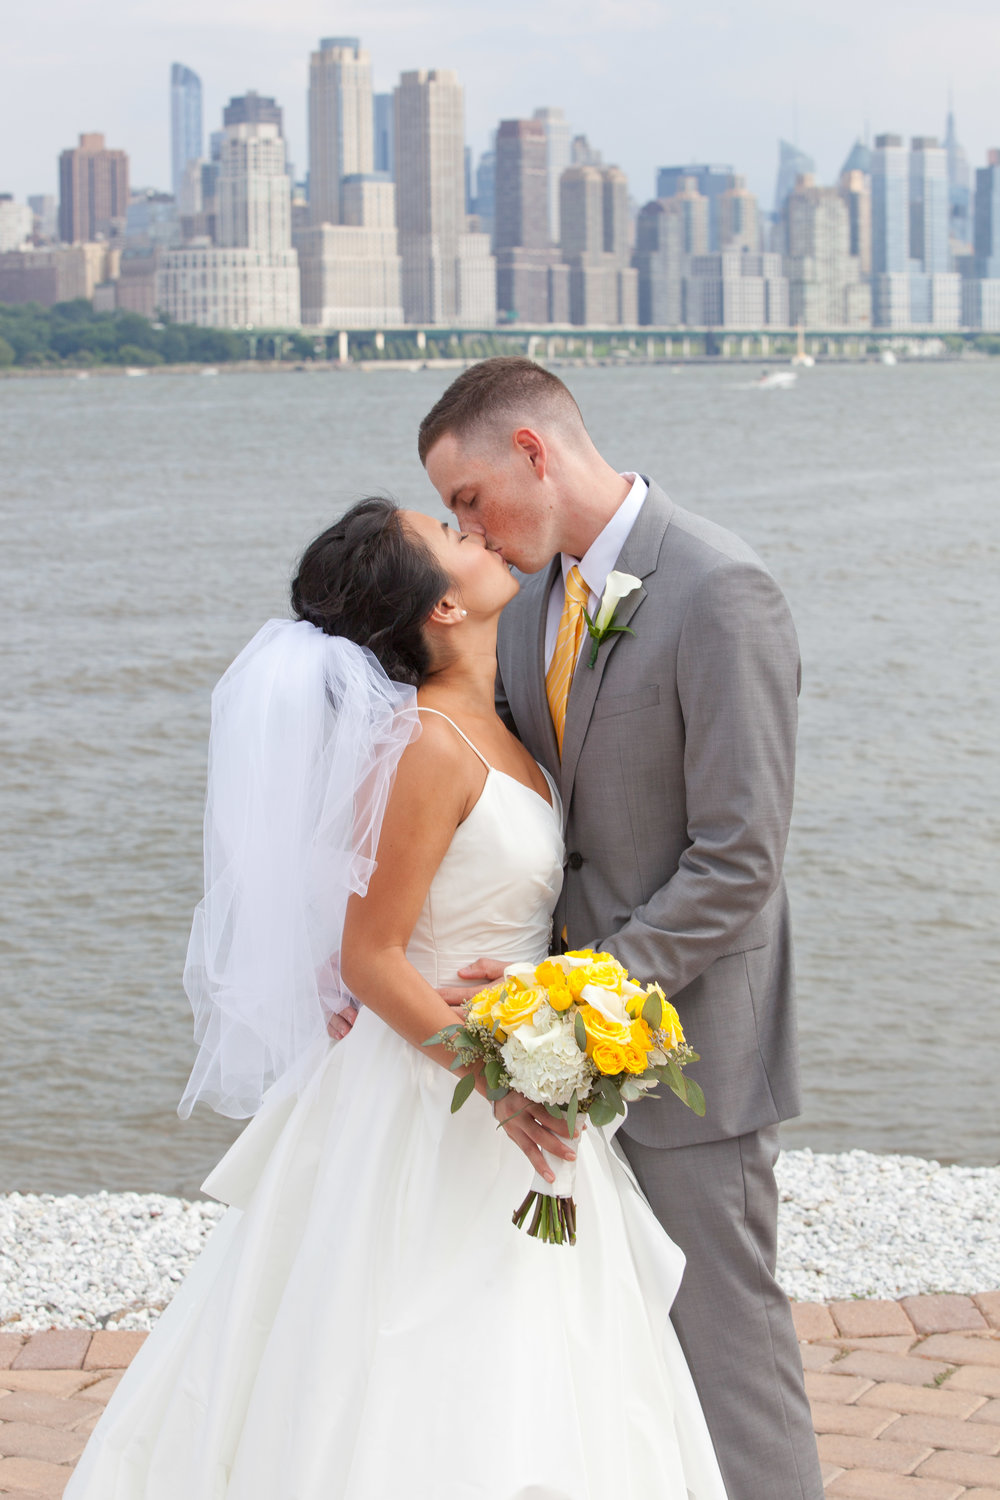 Janet & Tyler | Waterside | New Jersey